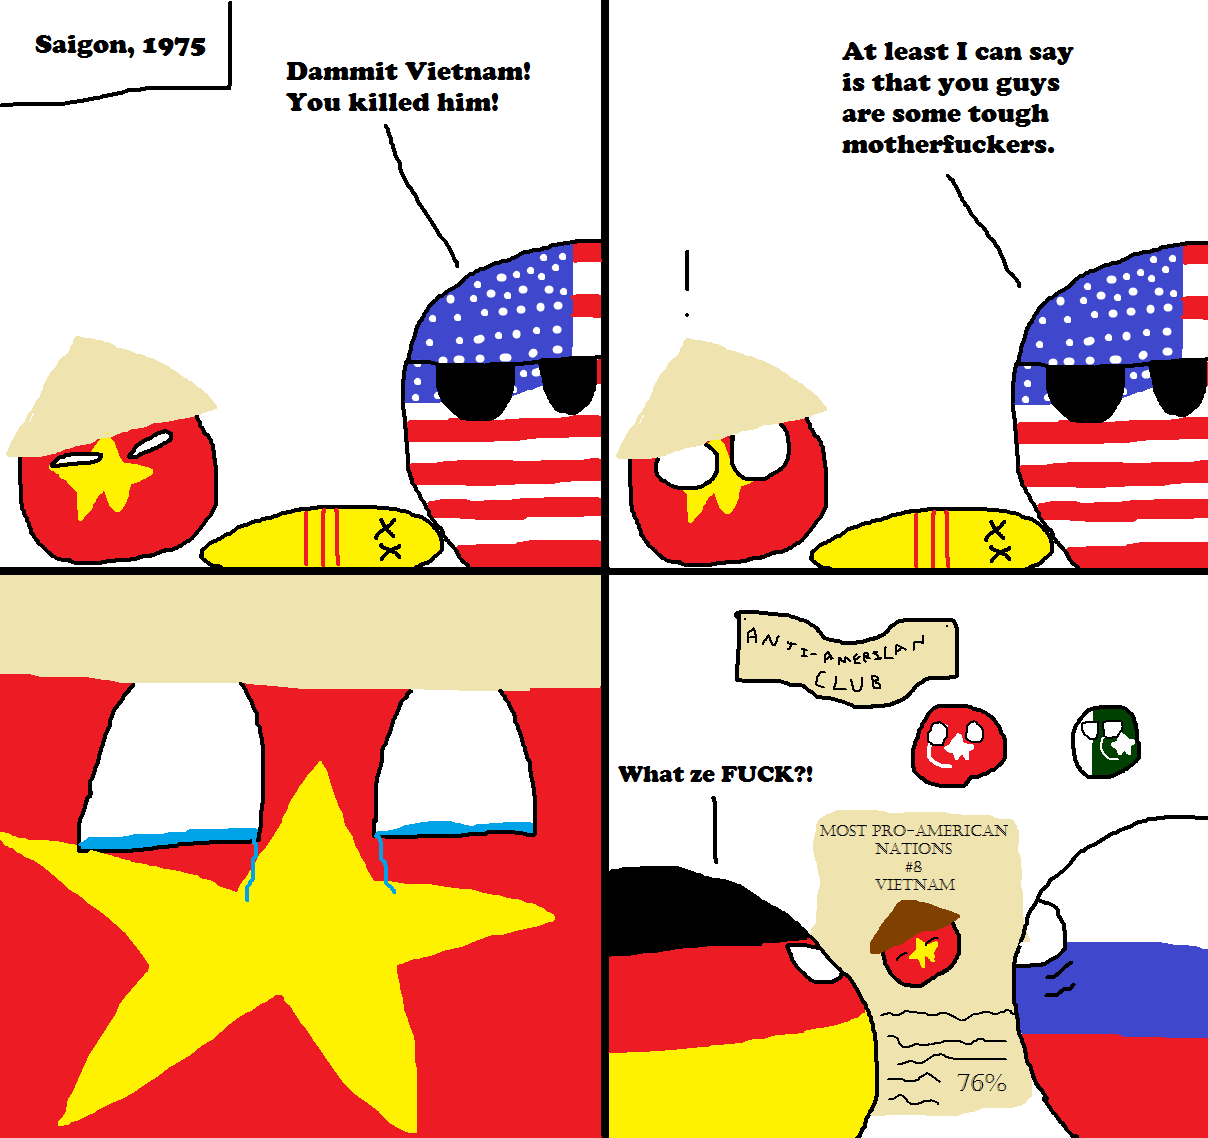 Nice fight, Vietnam